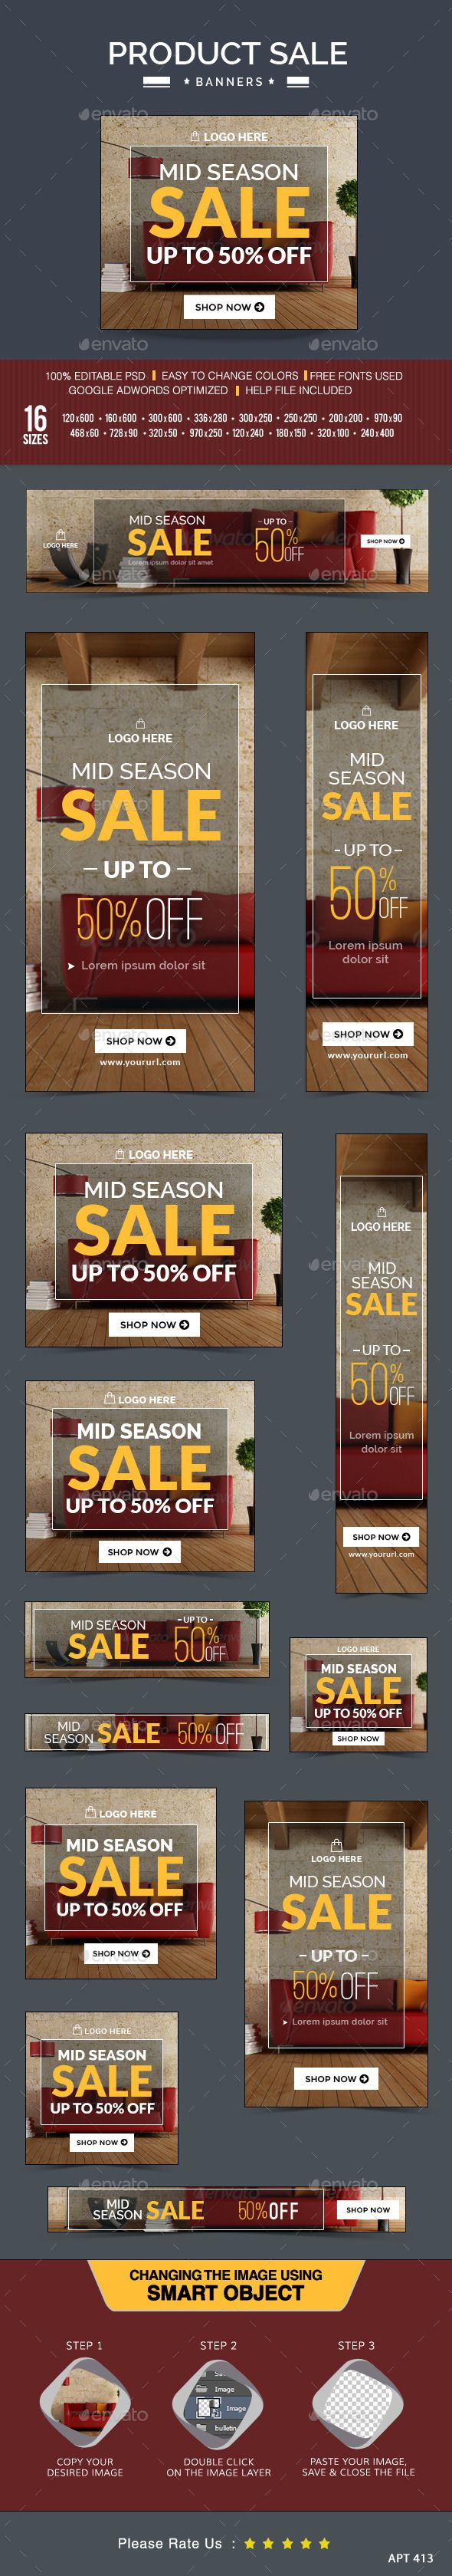 Mid Season Sale Banners. Promote your Products and services related to Mid Season Sale with this great looking Banner Set.